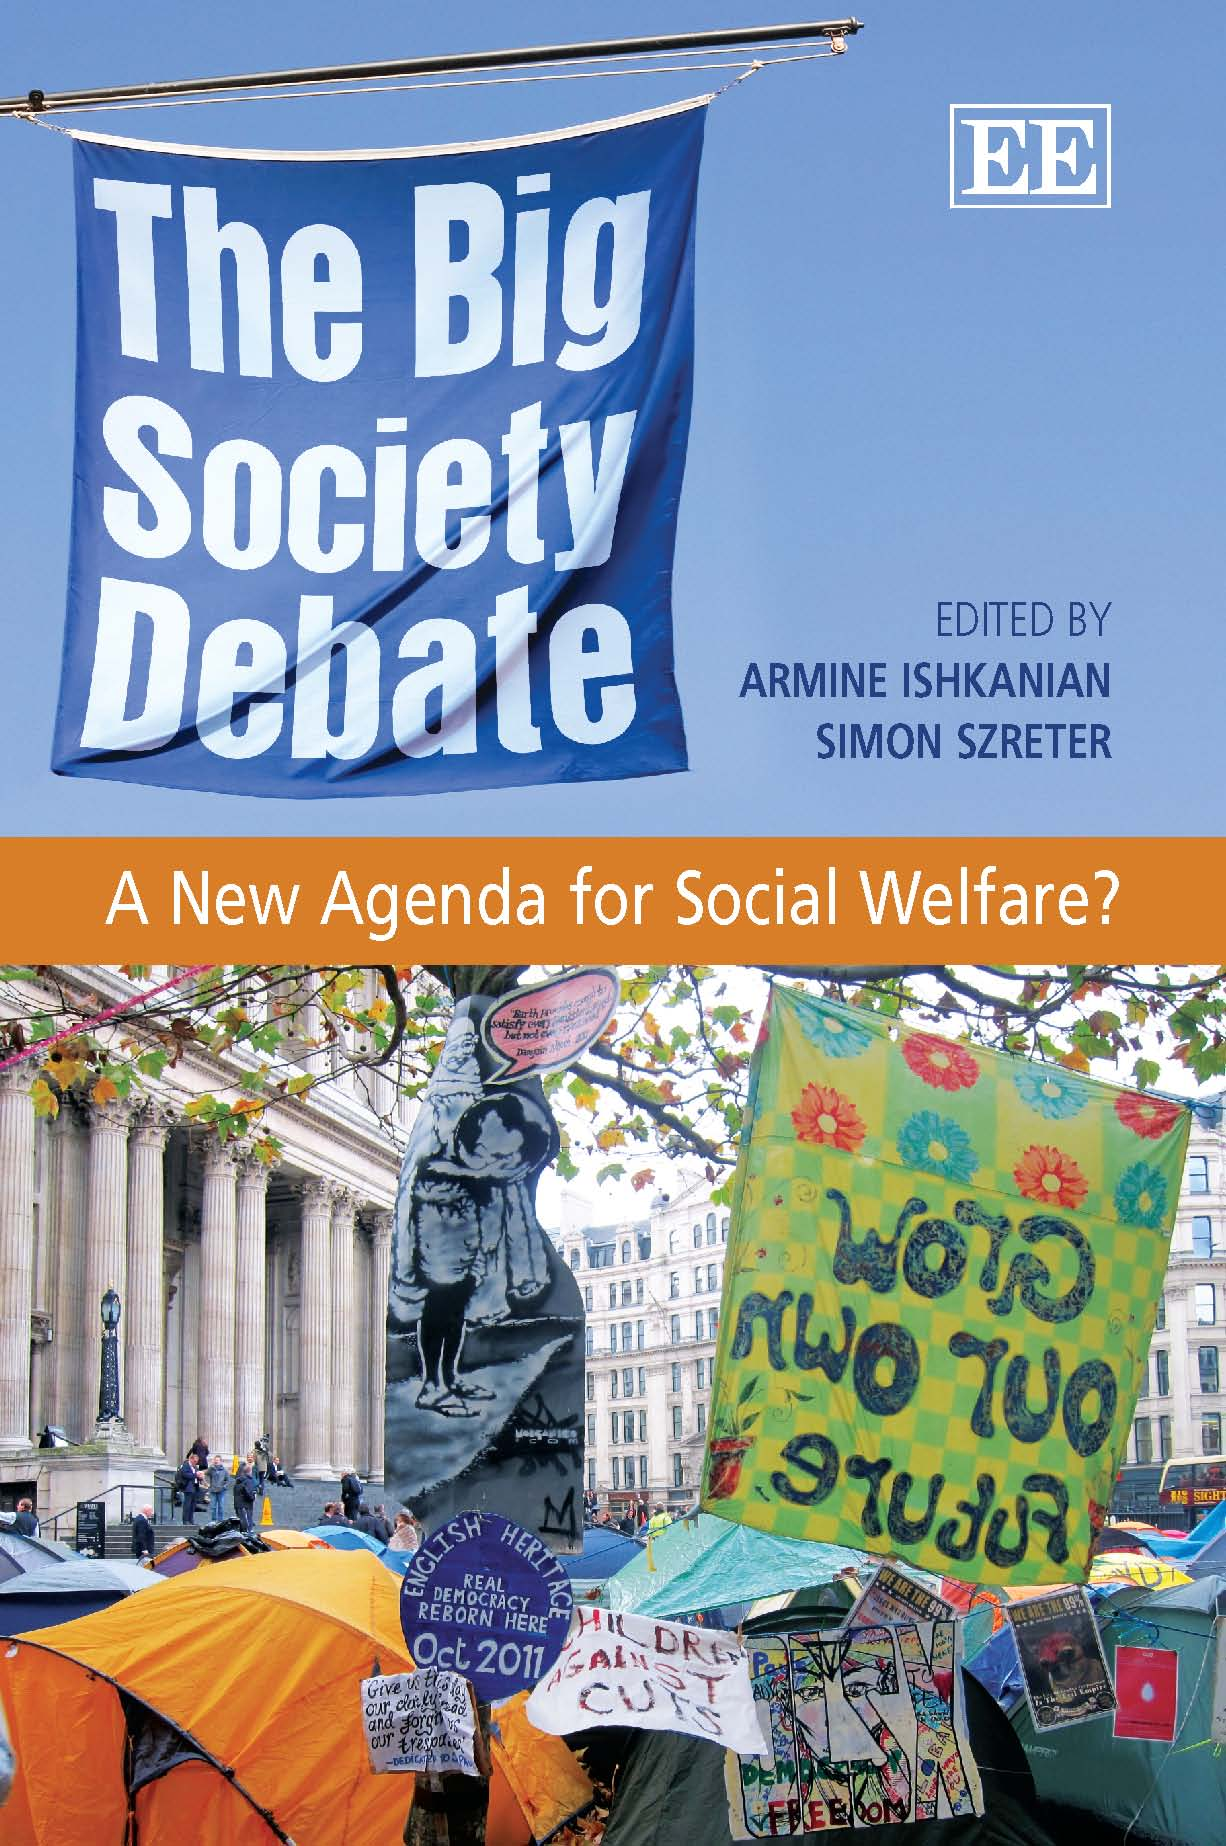 The Big Society Debate